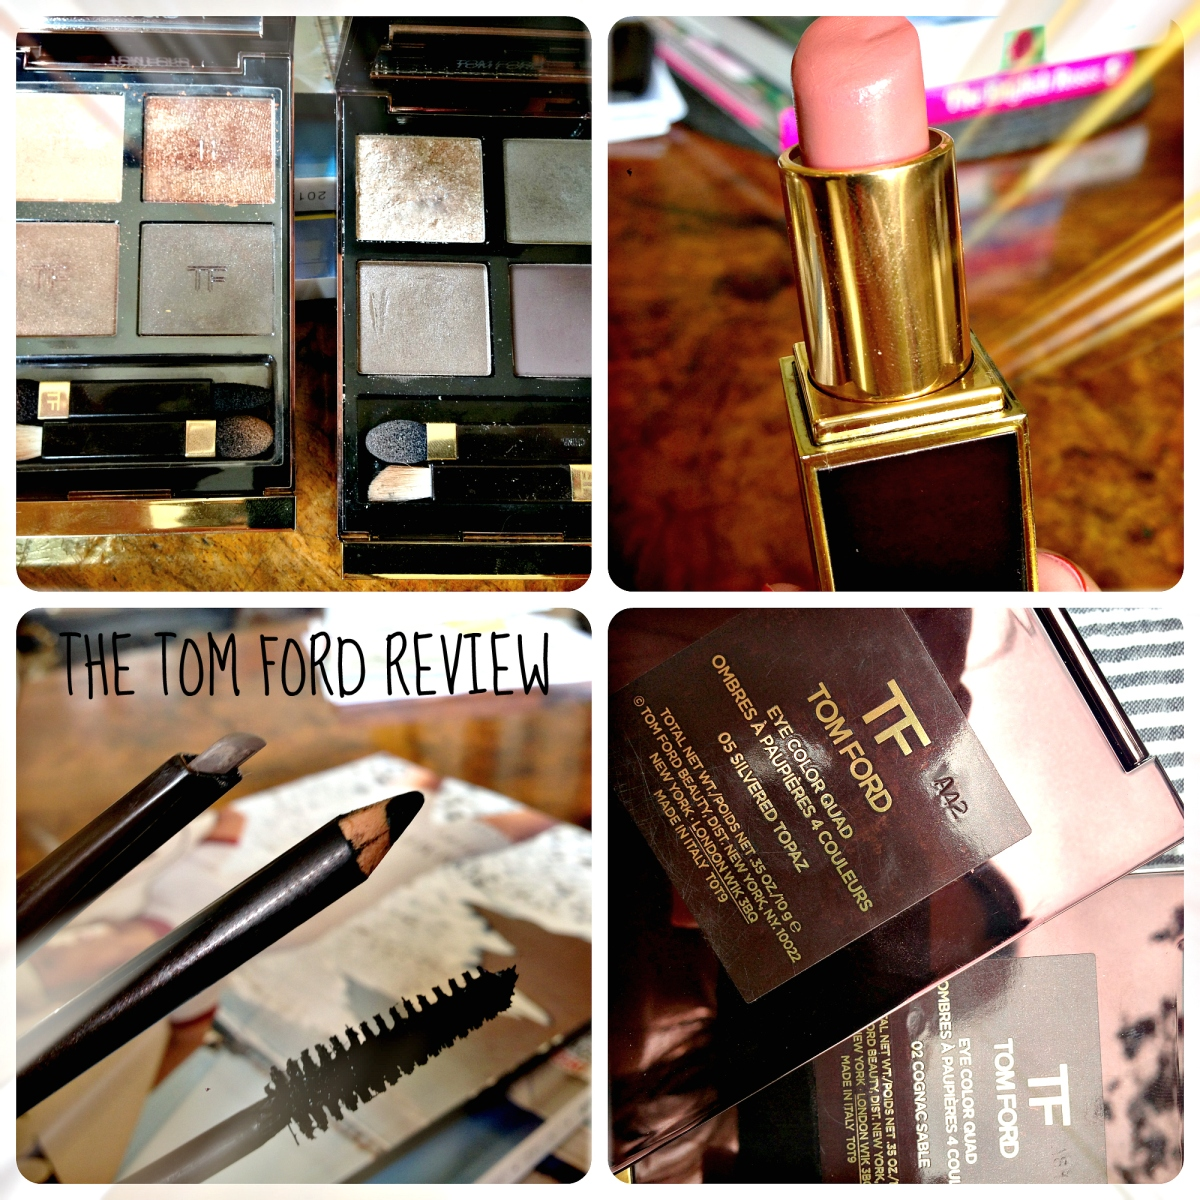 The Tom Ford Makeup Review